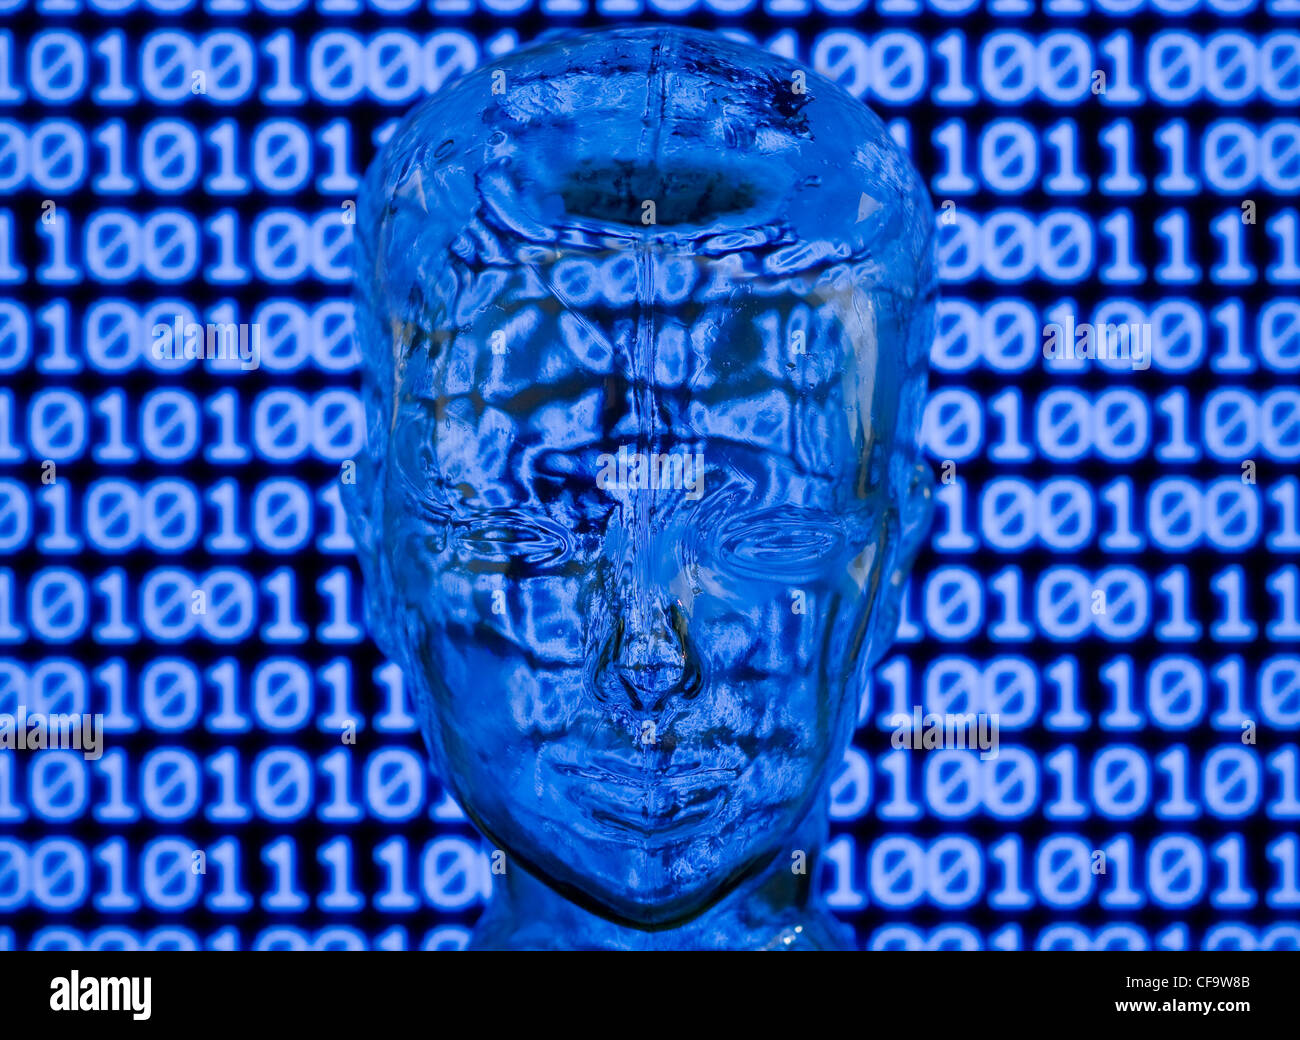 Glass head in front of binary code - Stock Image